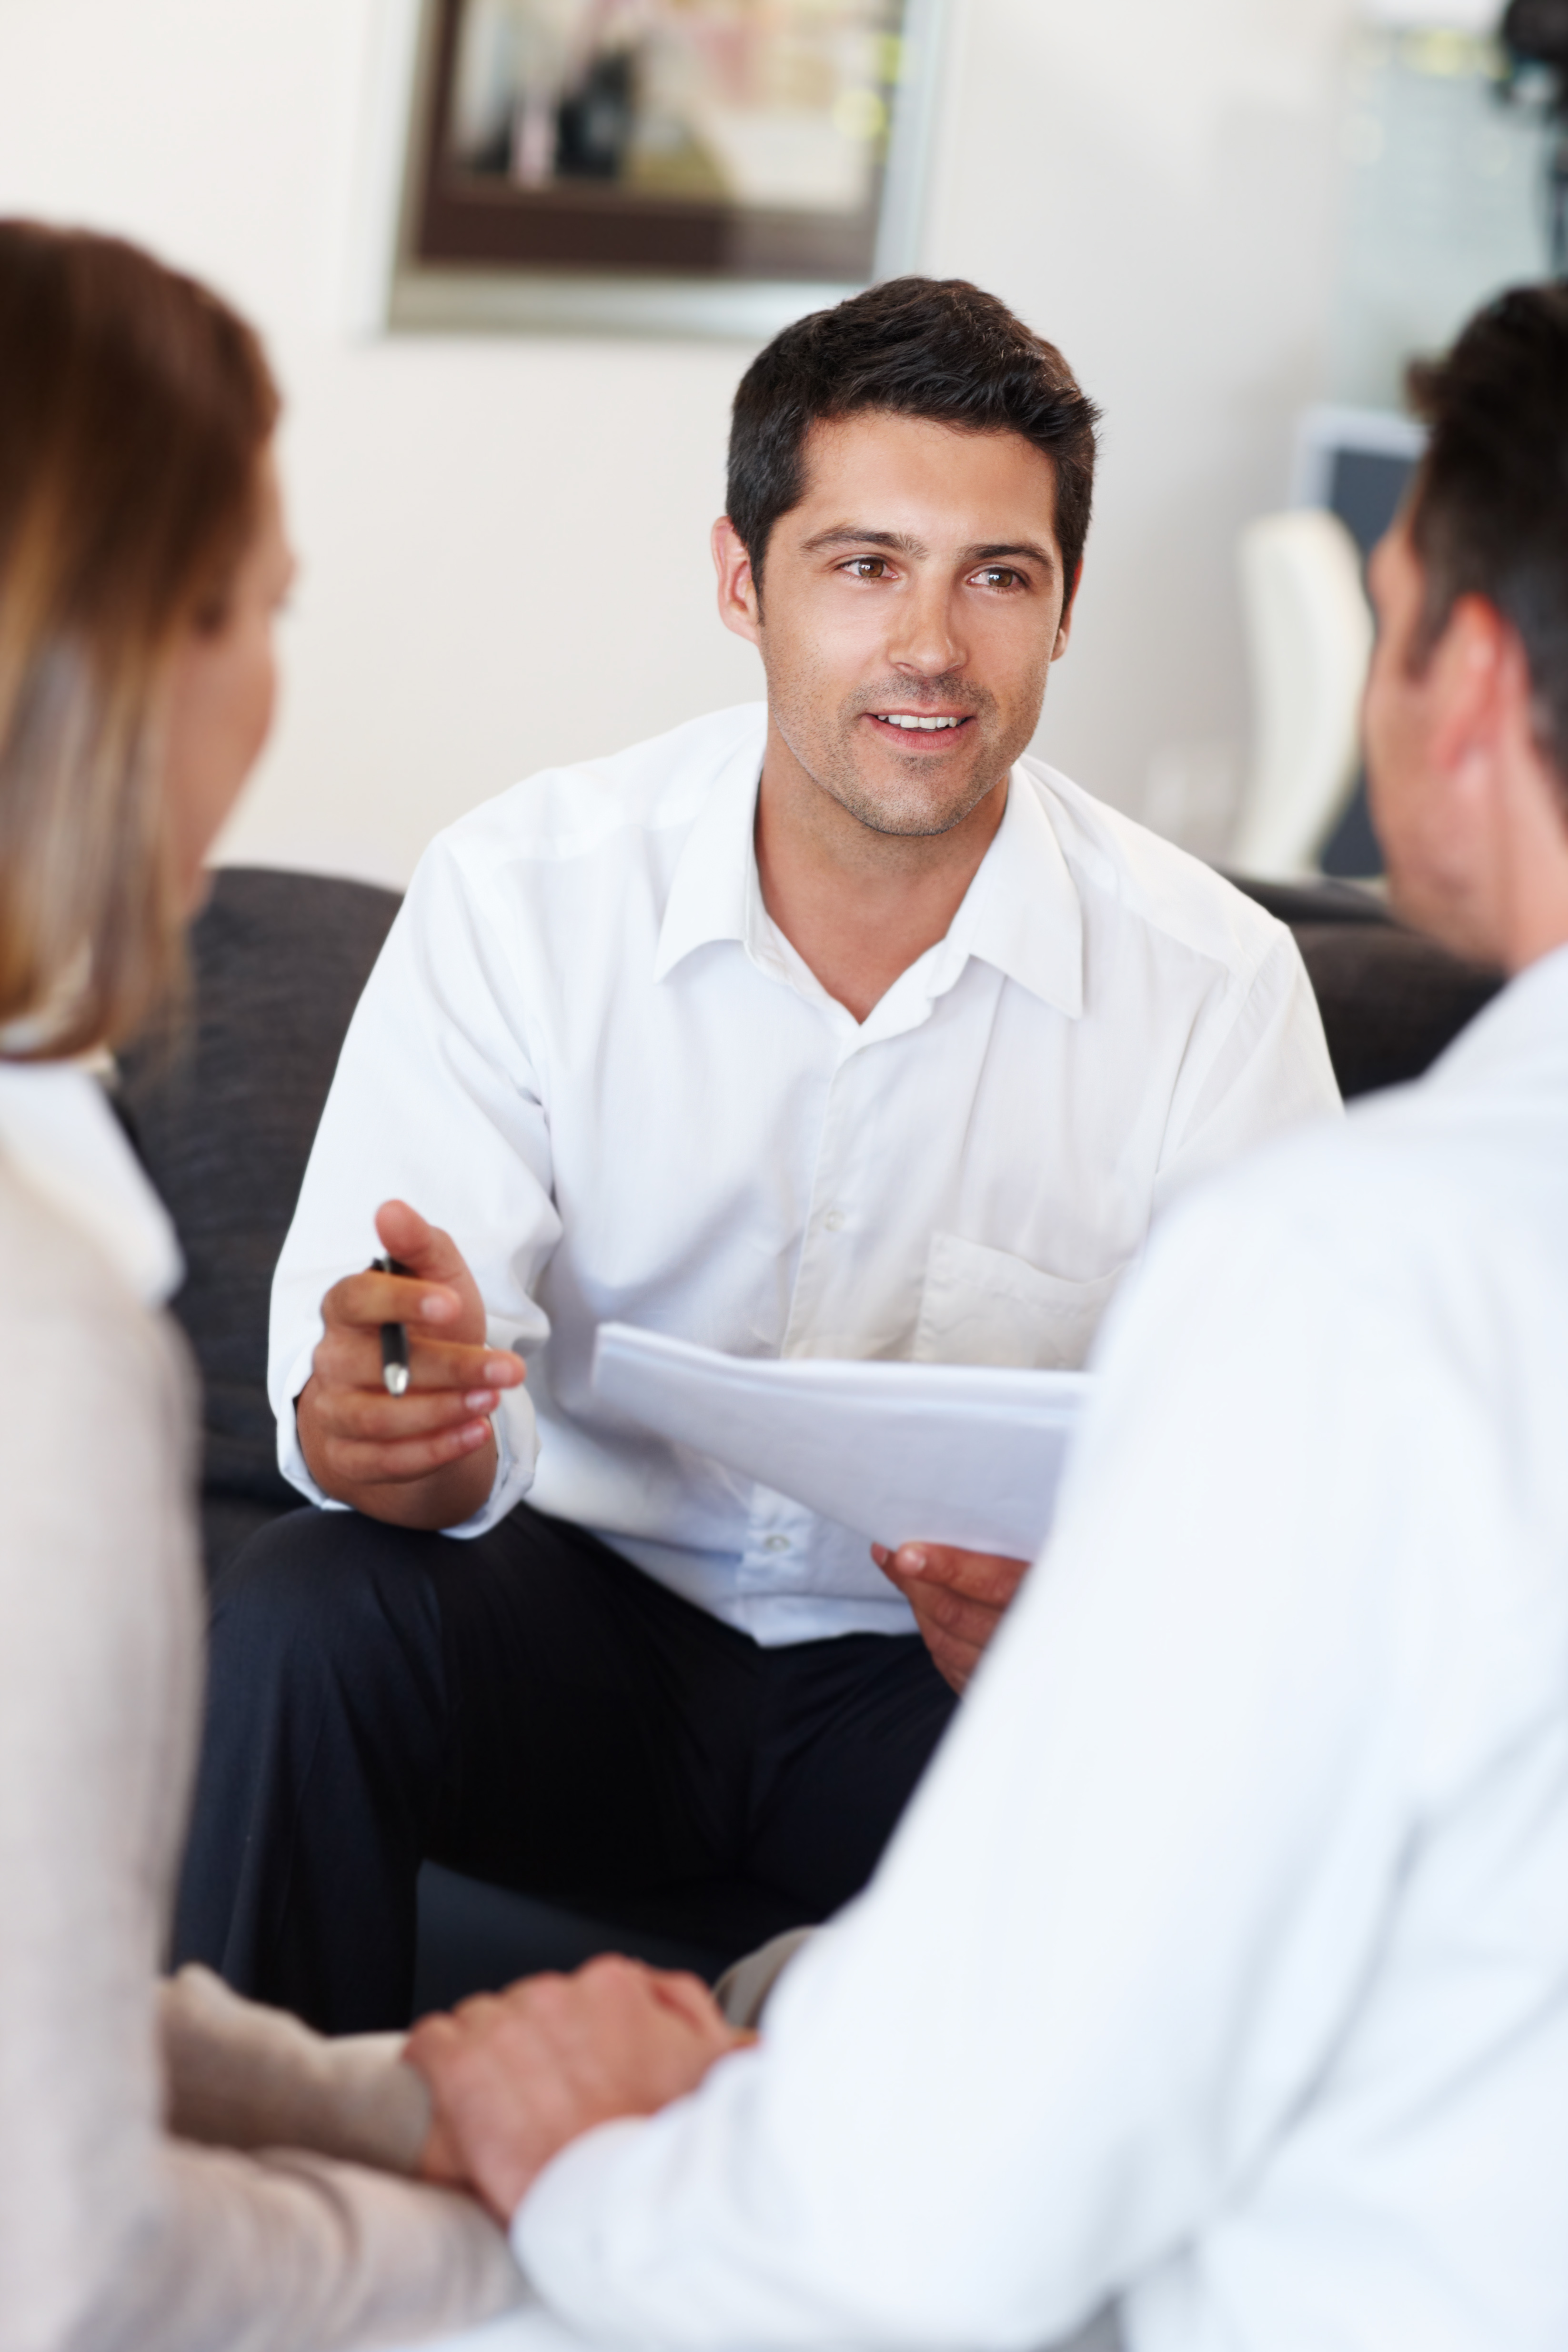 Consultation with immigration attorney